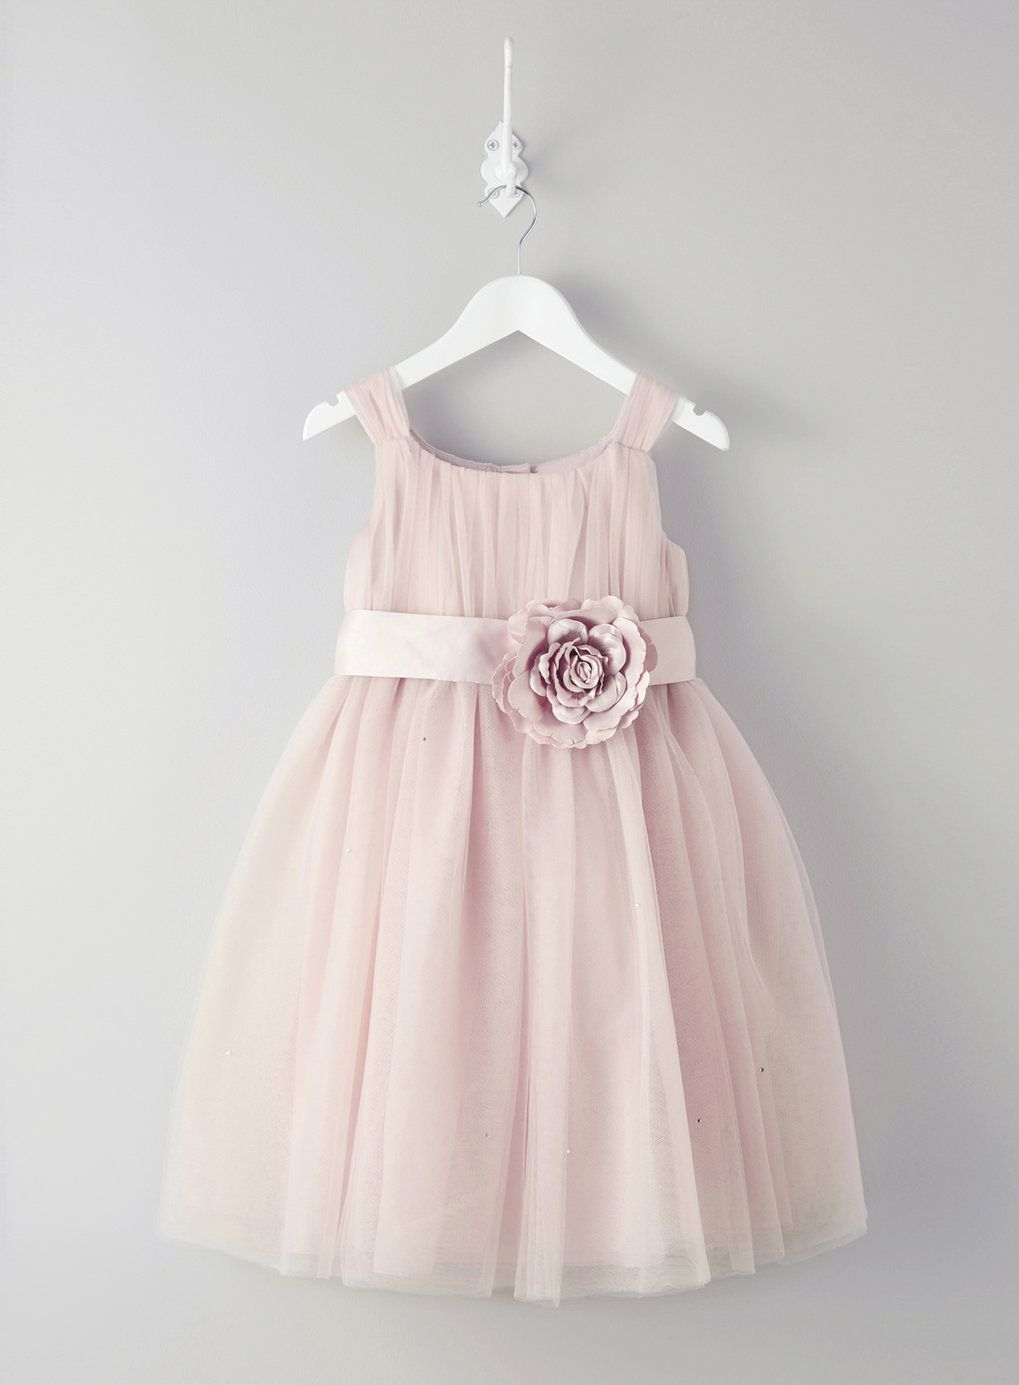 Lola Blush Flower Girl Dress - dresses - flower girl - Wedding- BHS ...